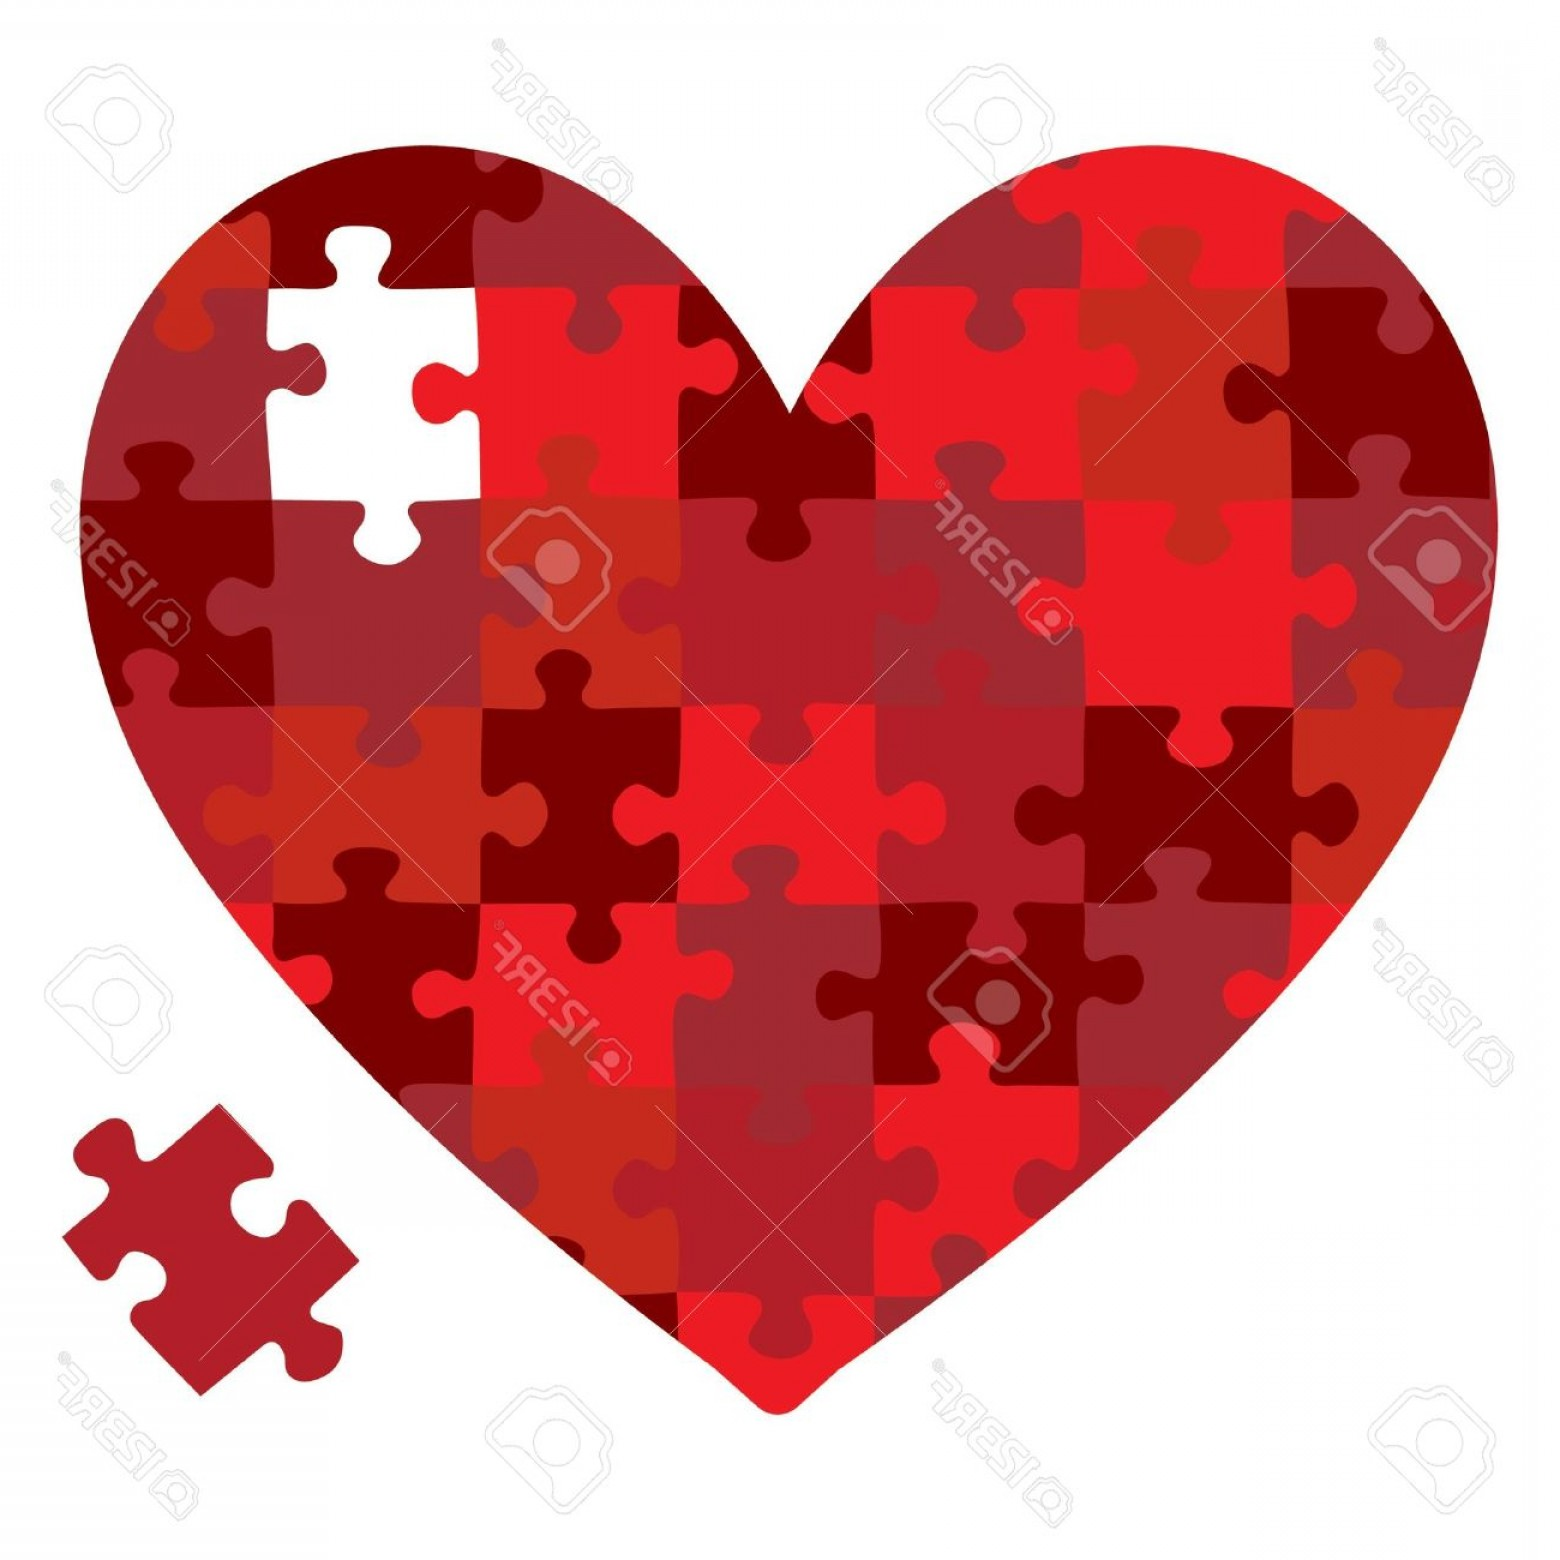 Puzzle In Vector Format: Photoheart Jigsaw Puzzle In Vector Format